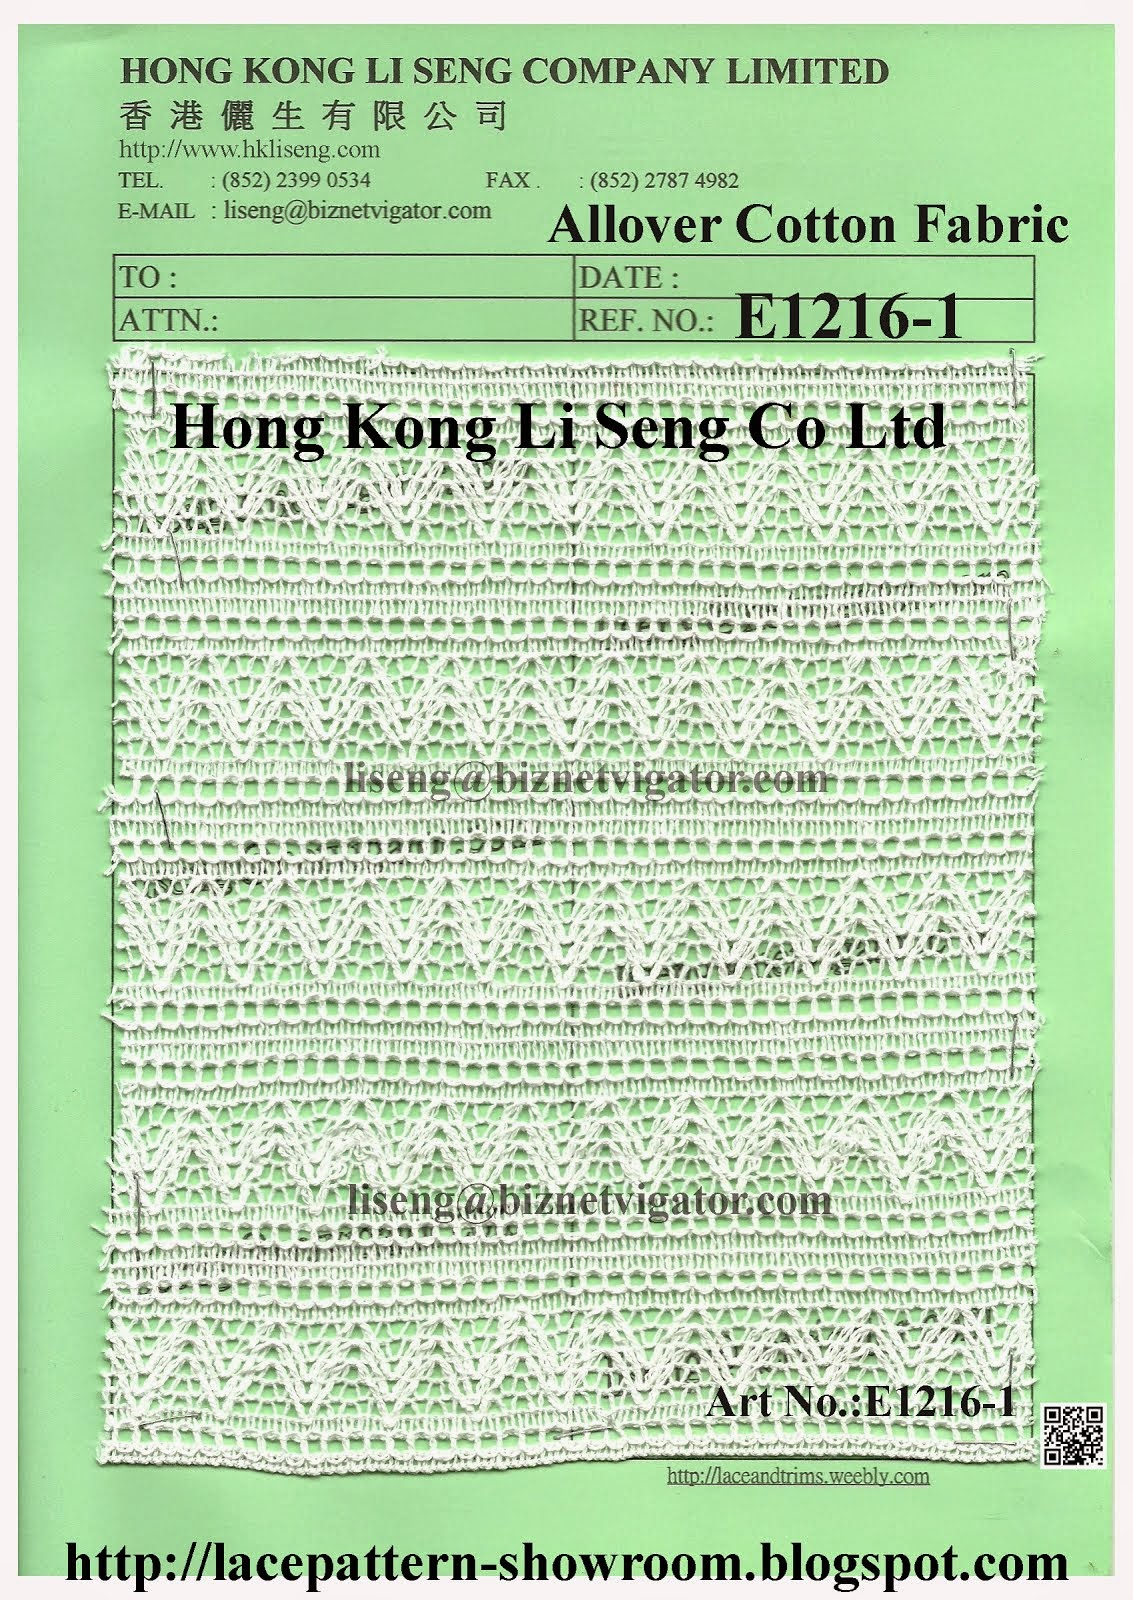 Allover Cotton Lace Fabric Manufacturer Wholesale Supplier - Hong Kong Li Seng Co Ltd